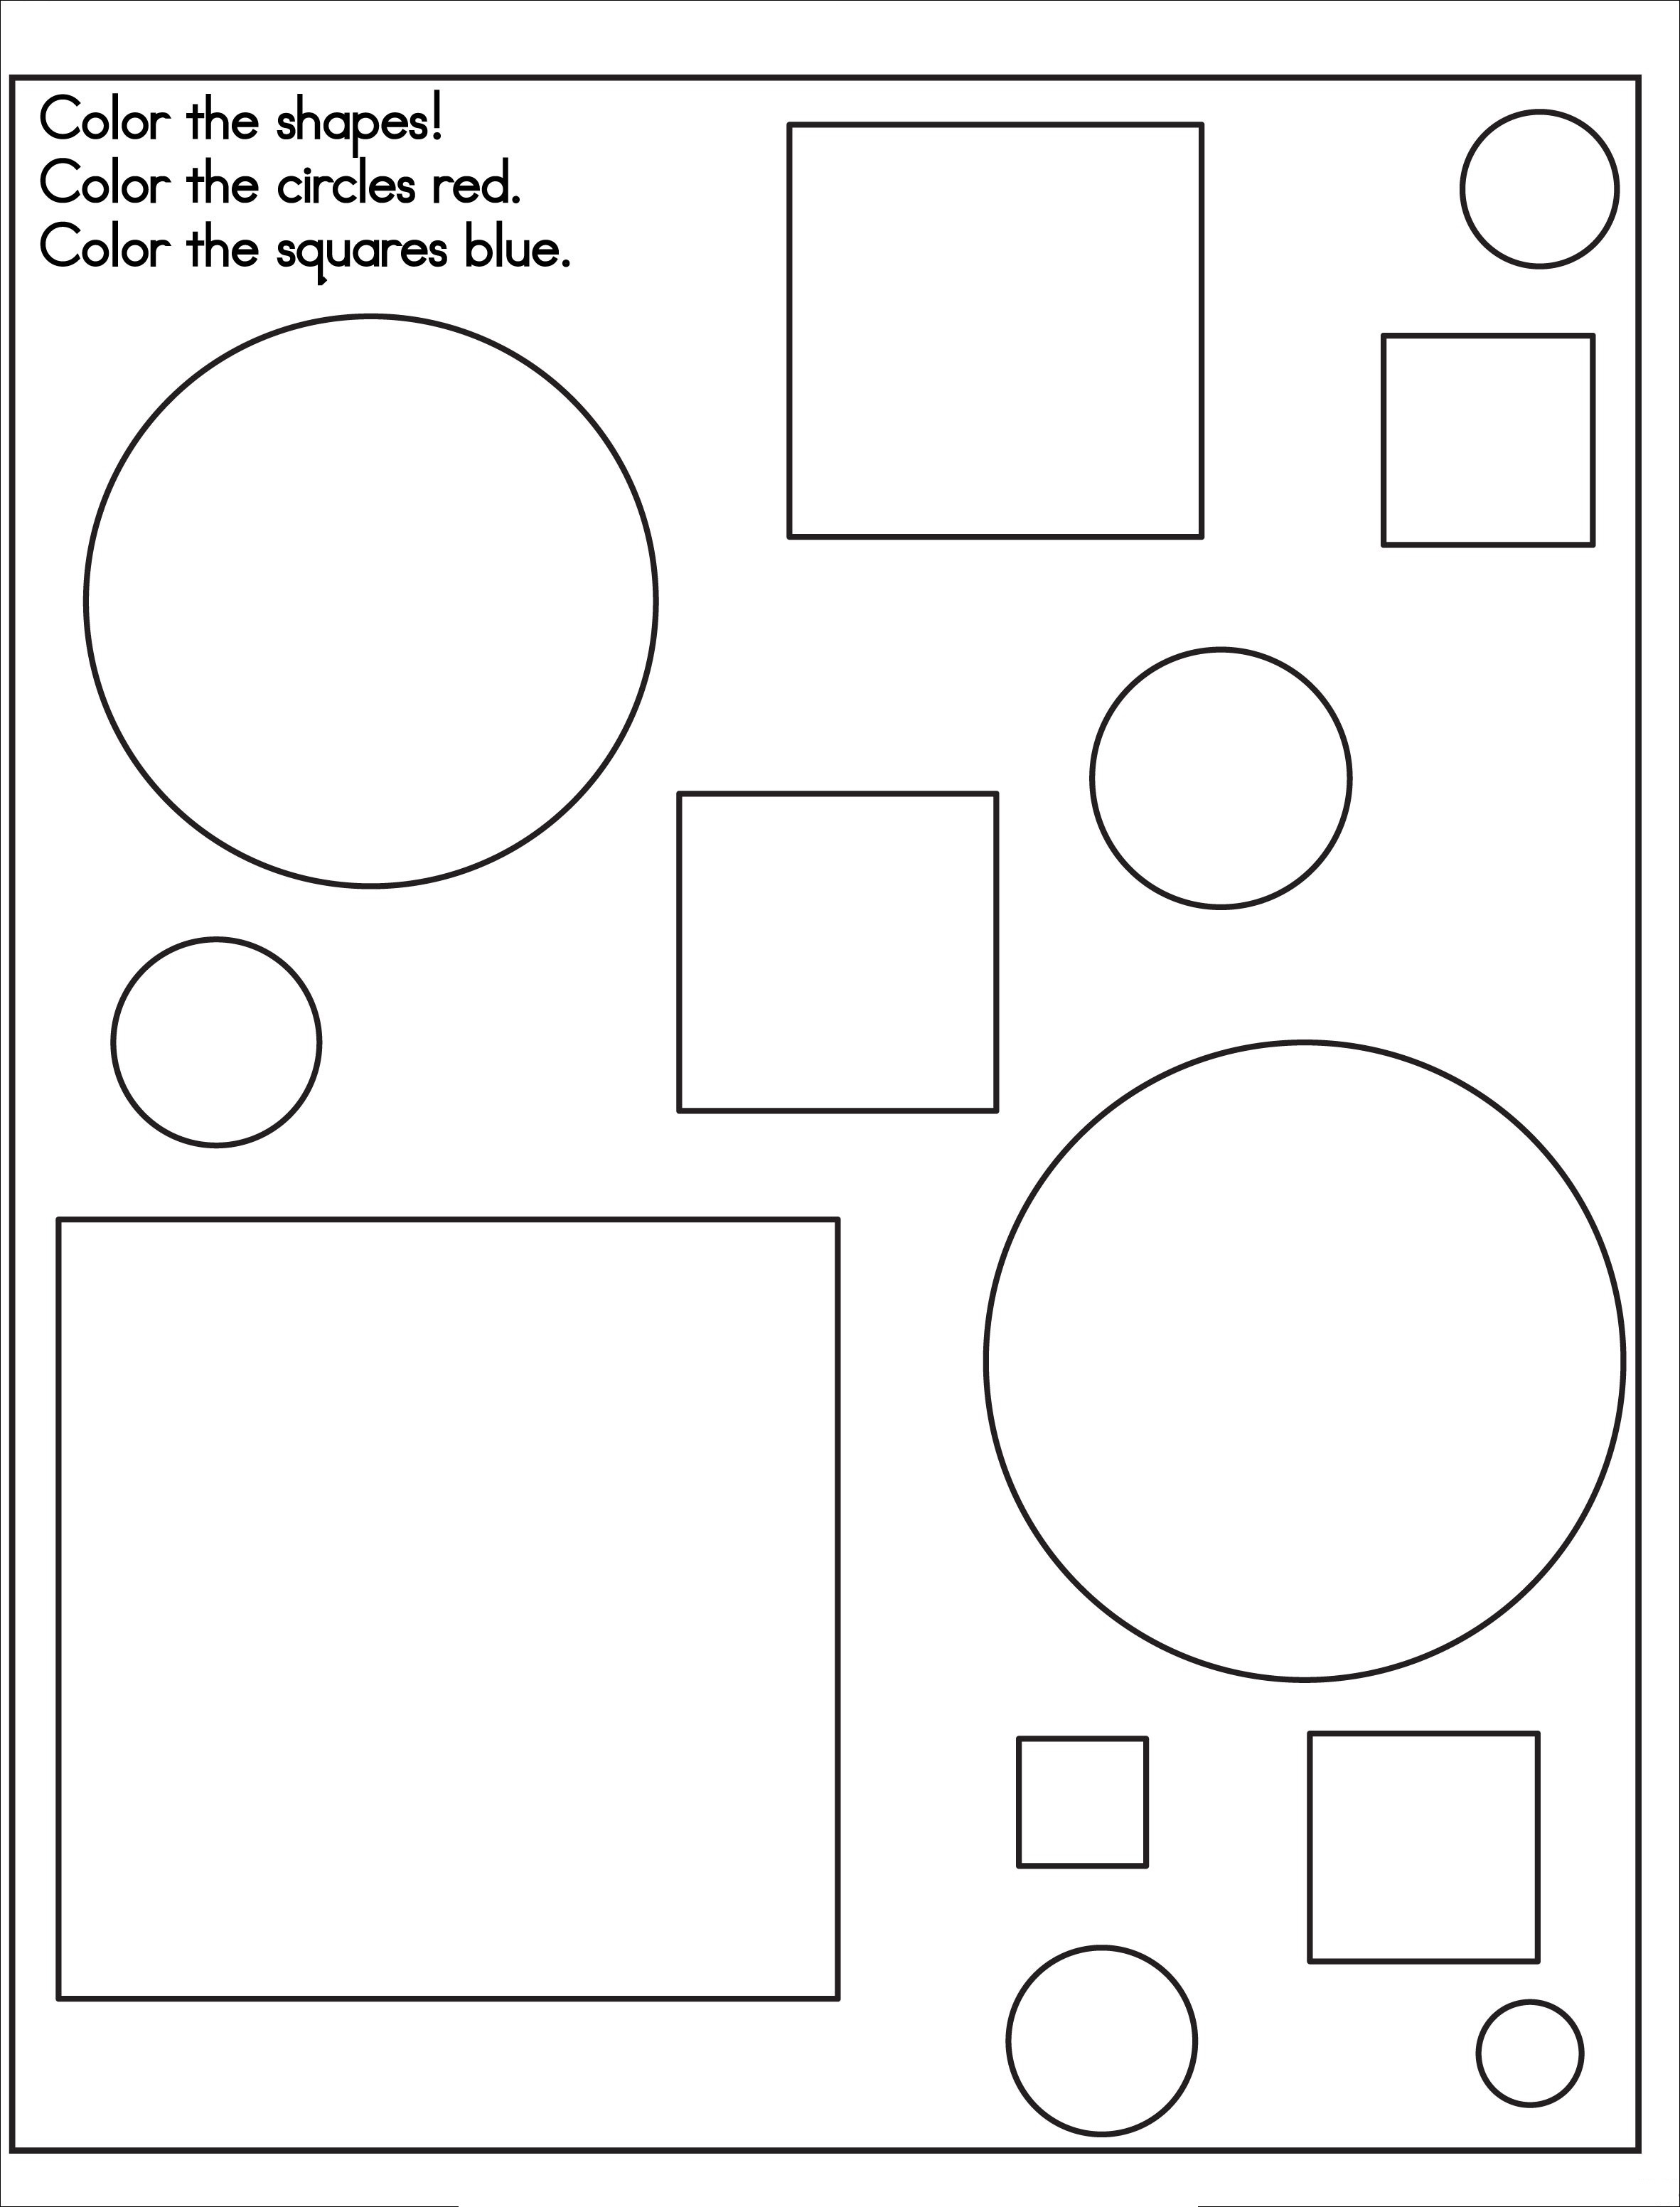 7 Best Images Of Free Printable Shapes Toddlers